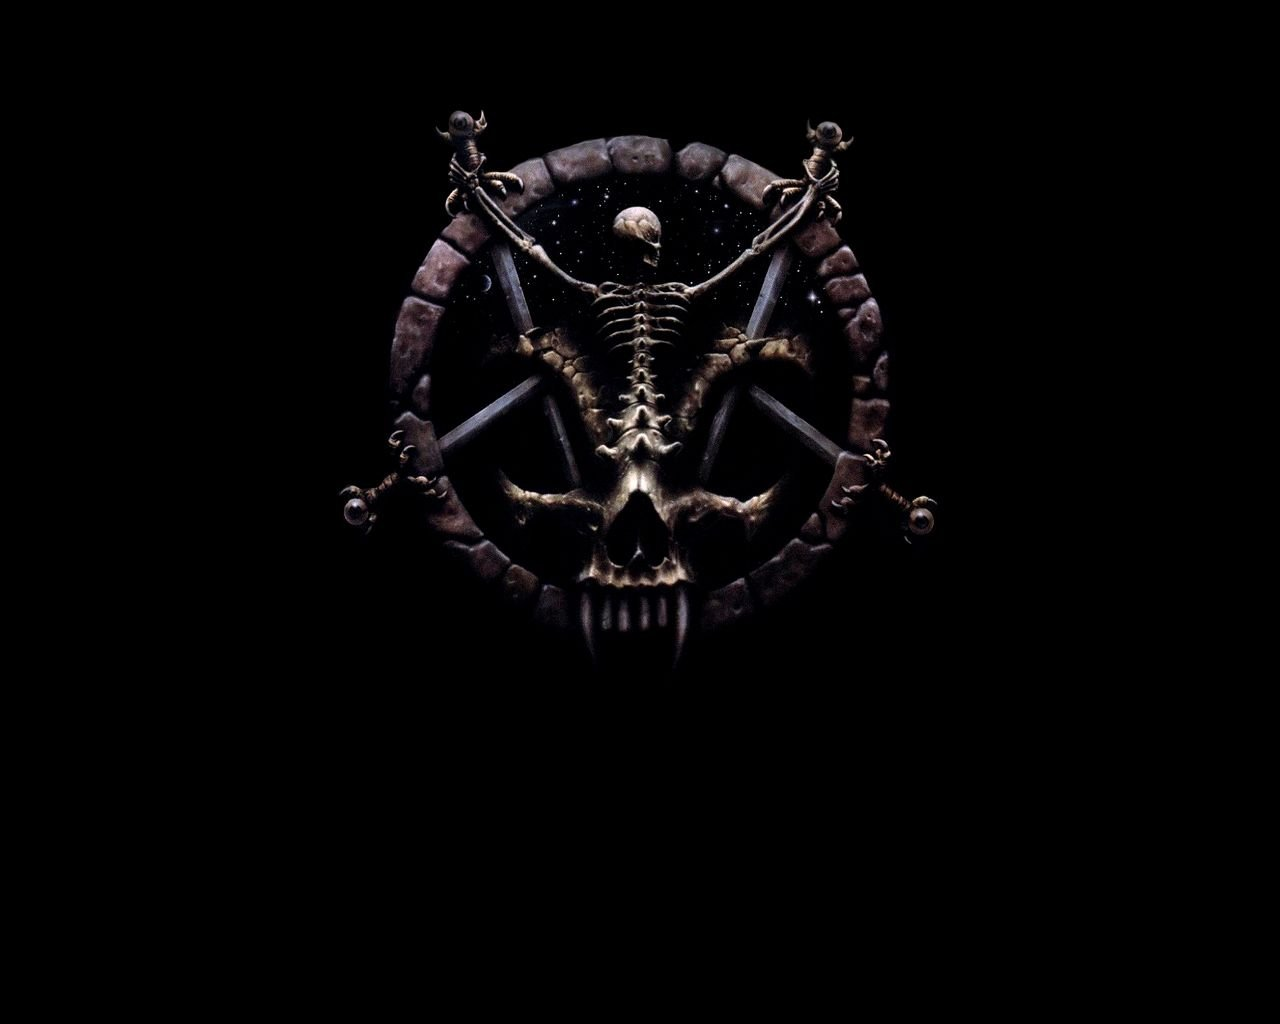 Wallpapers For Slayer Iphone Wallpaper 1280x1024